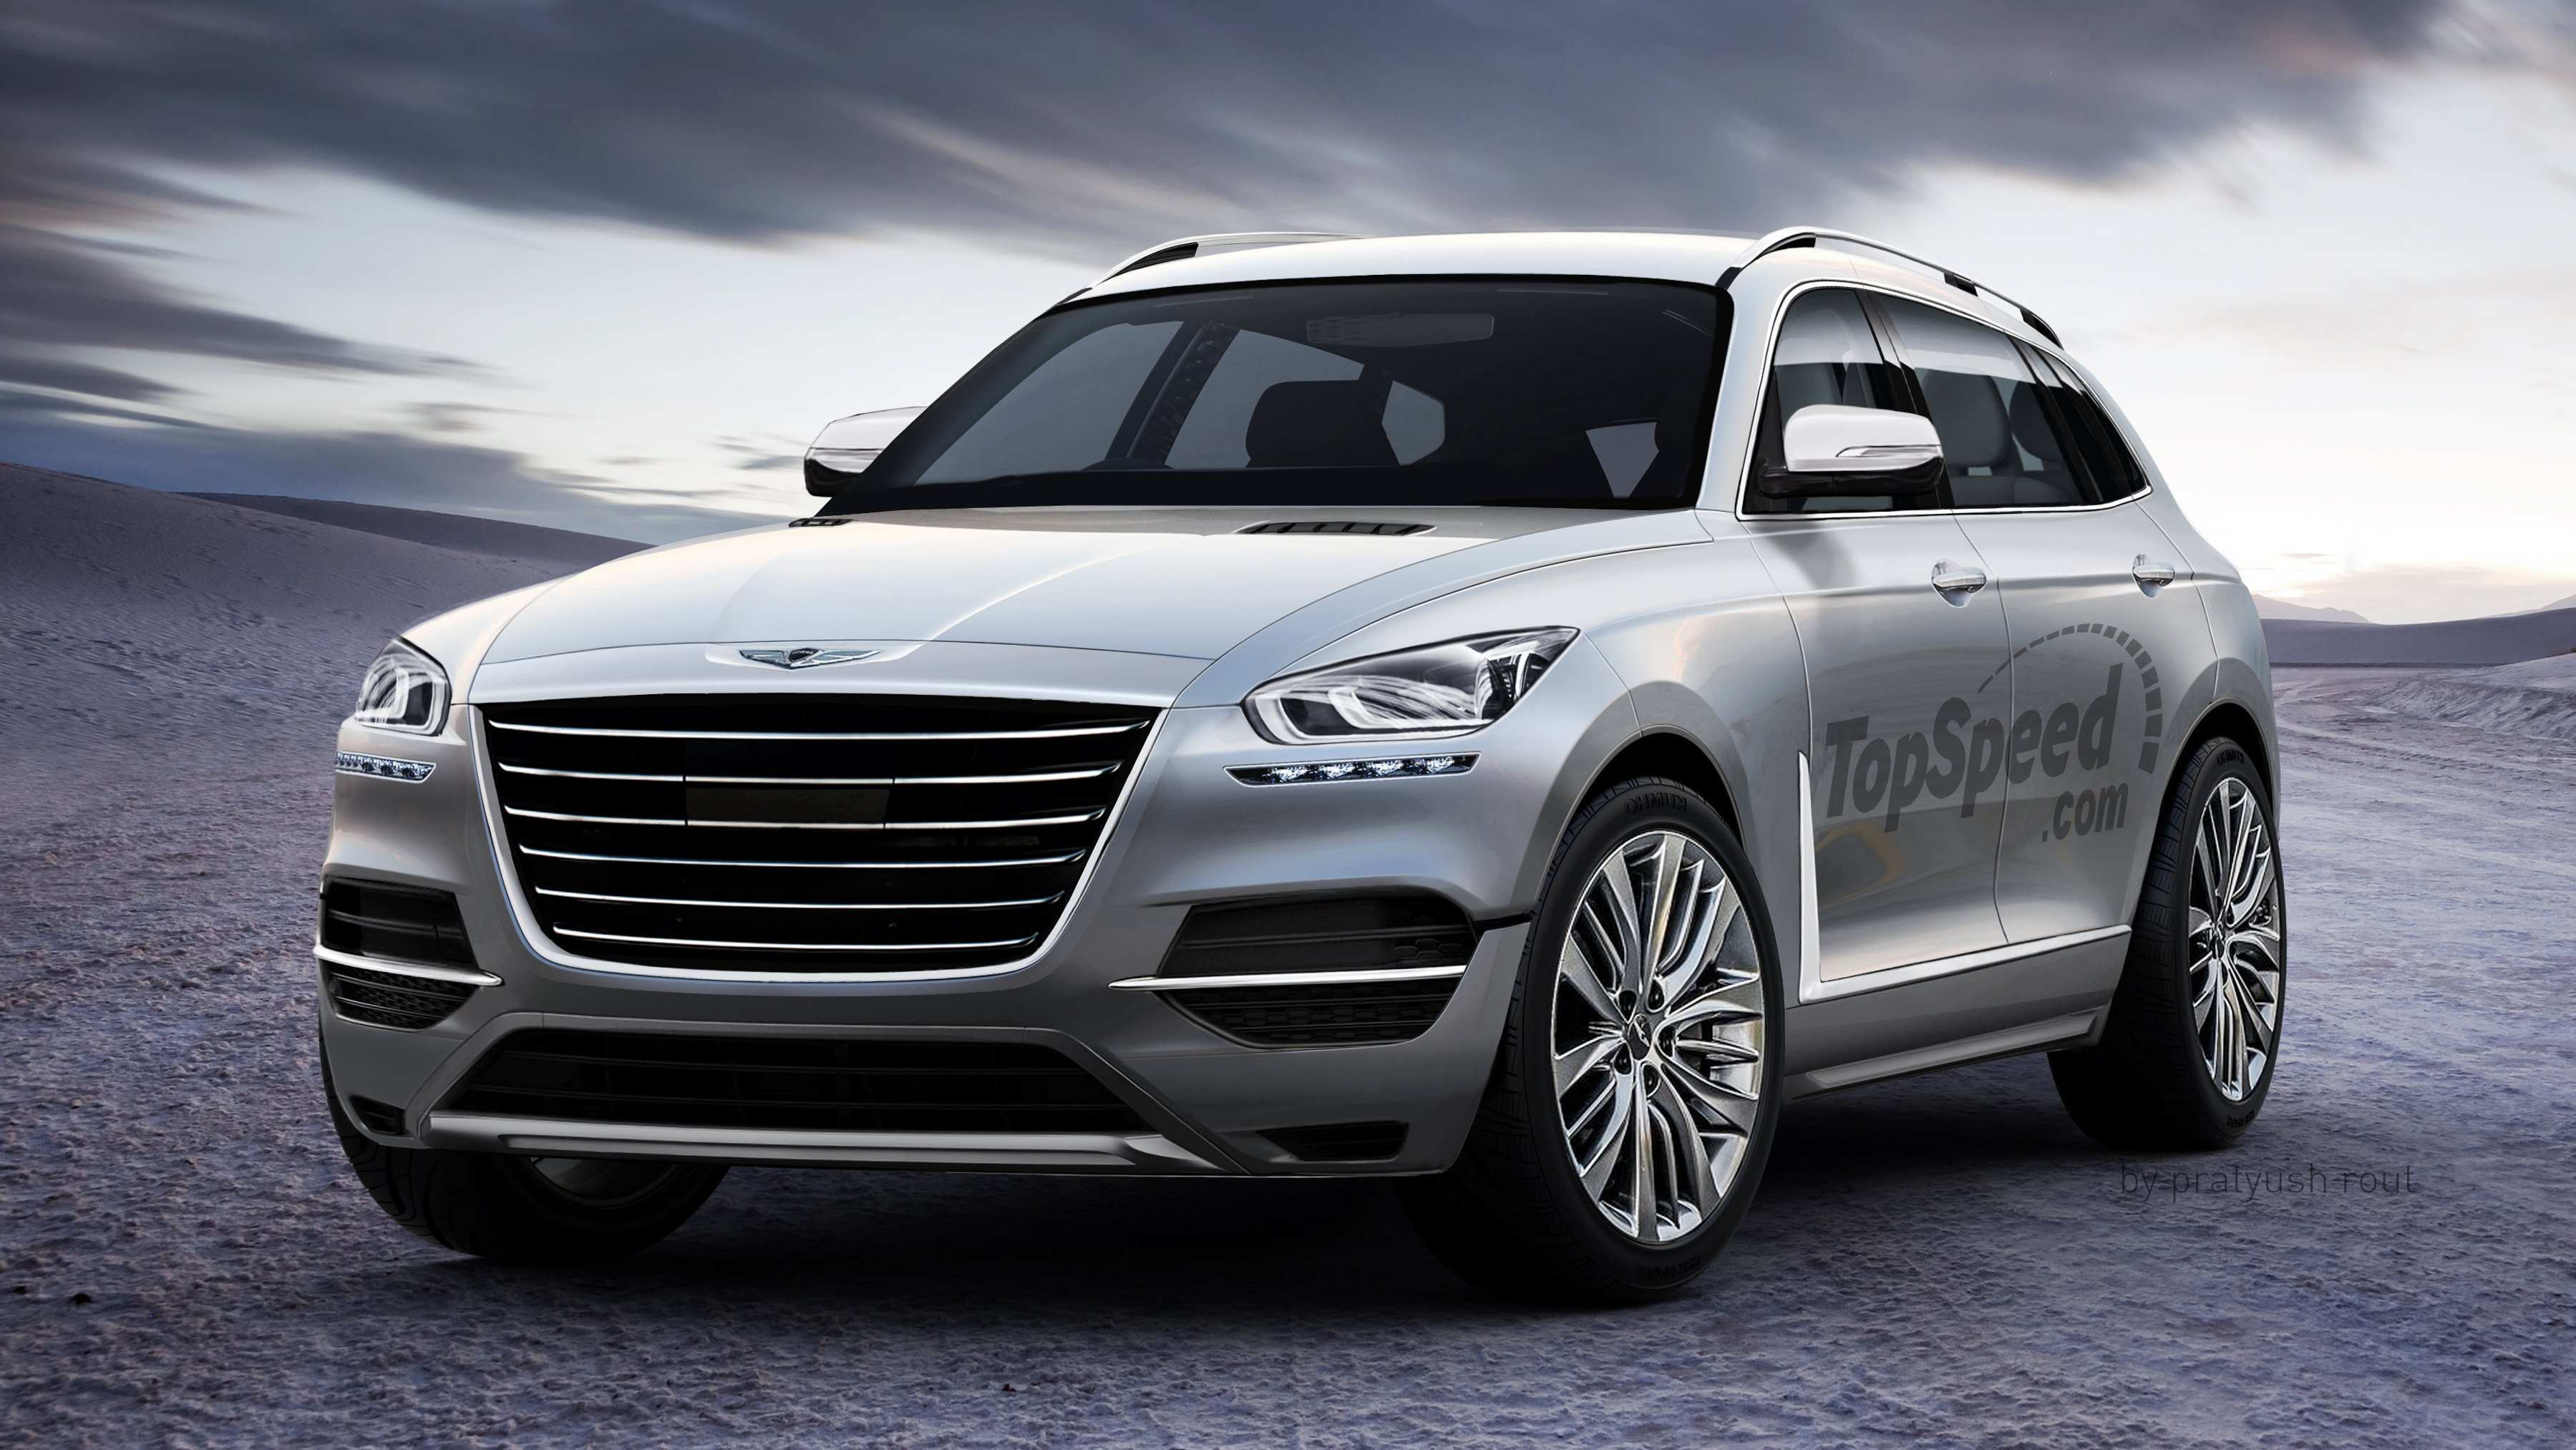 91 The 2020 Hyundai Genesis Suv Overview by 2020 Hyundai Genesis Suv